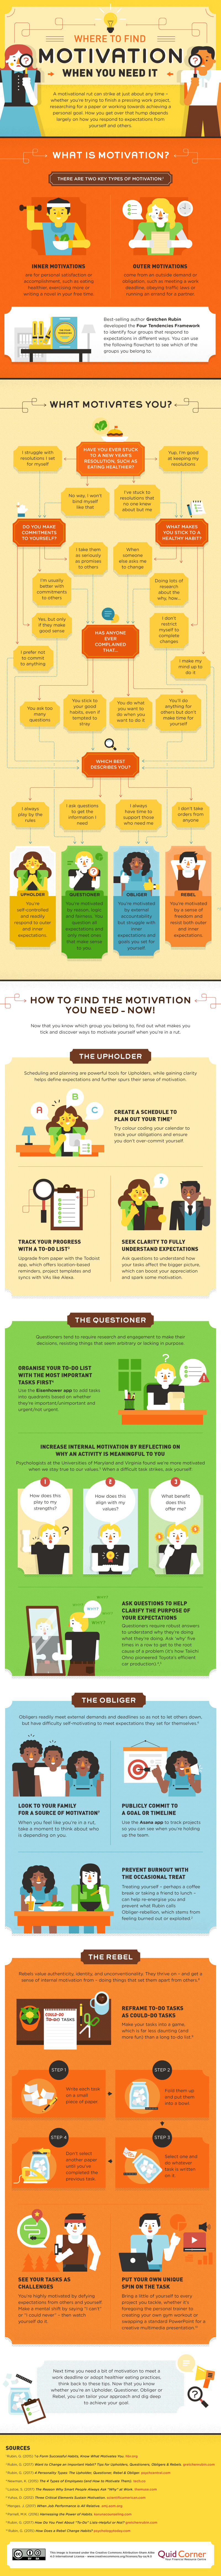 Find motivation when you need it infographic